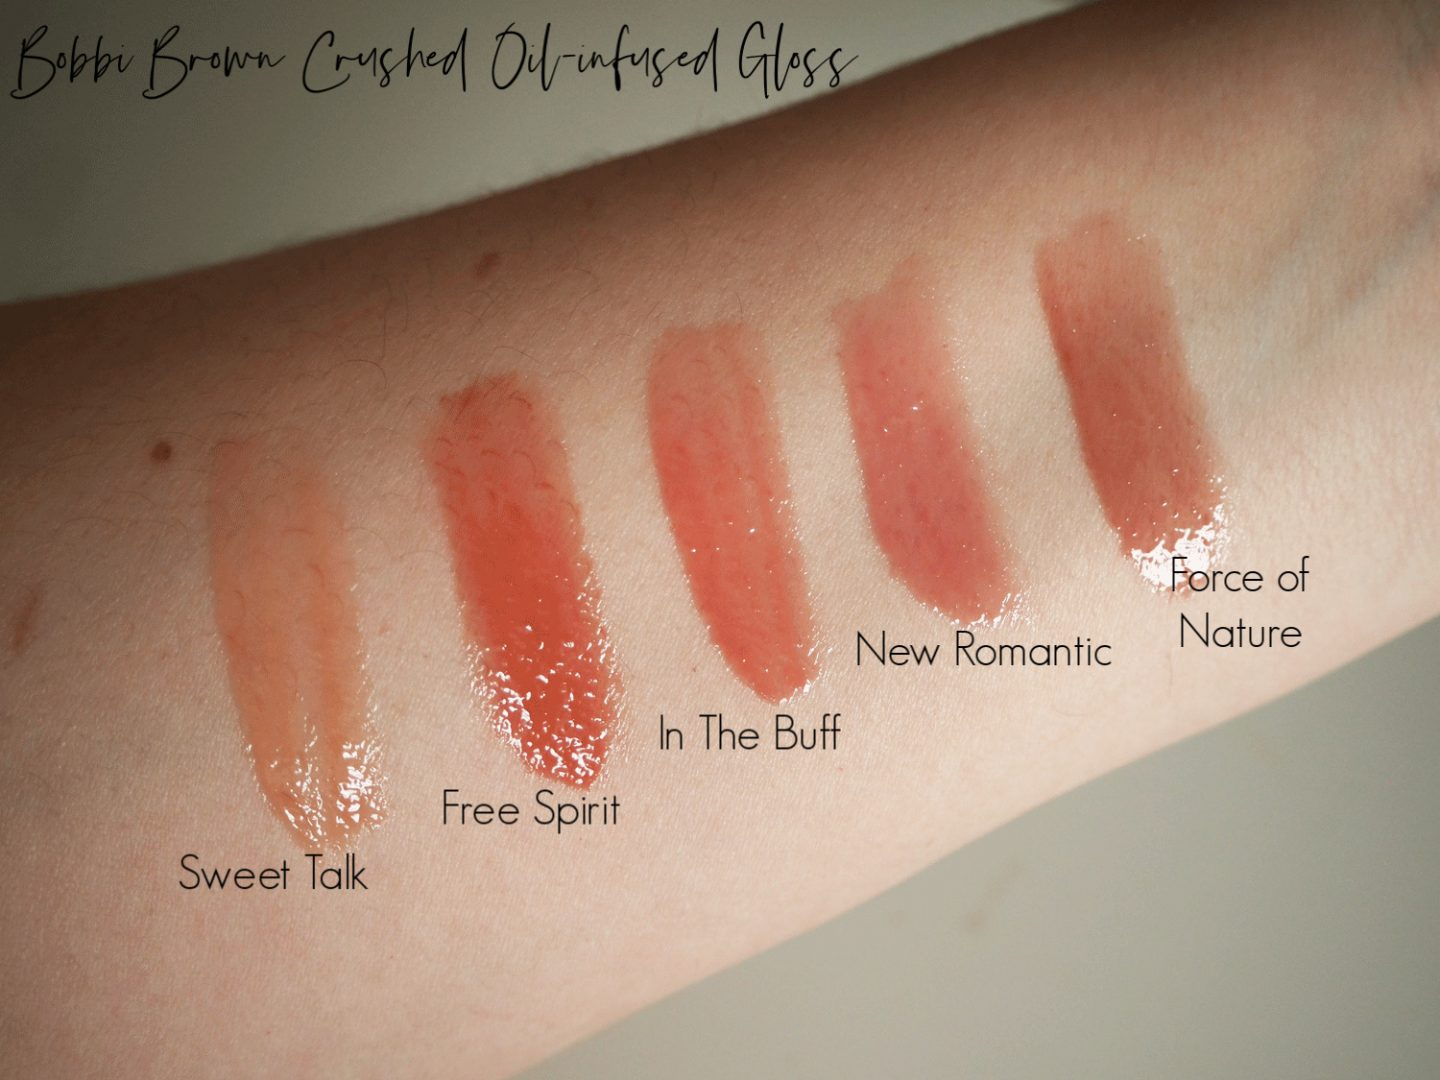 Bobbi brown crushed oil infused gloss review and swatches